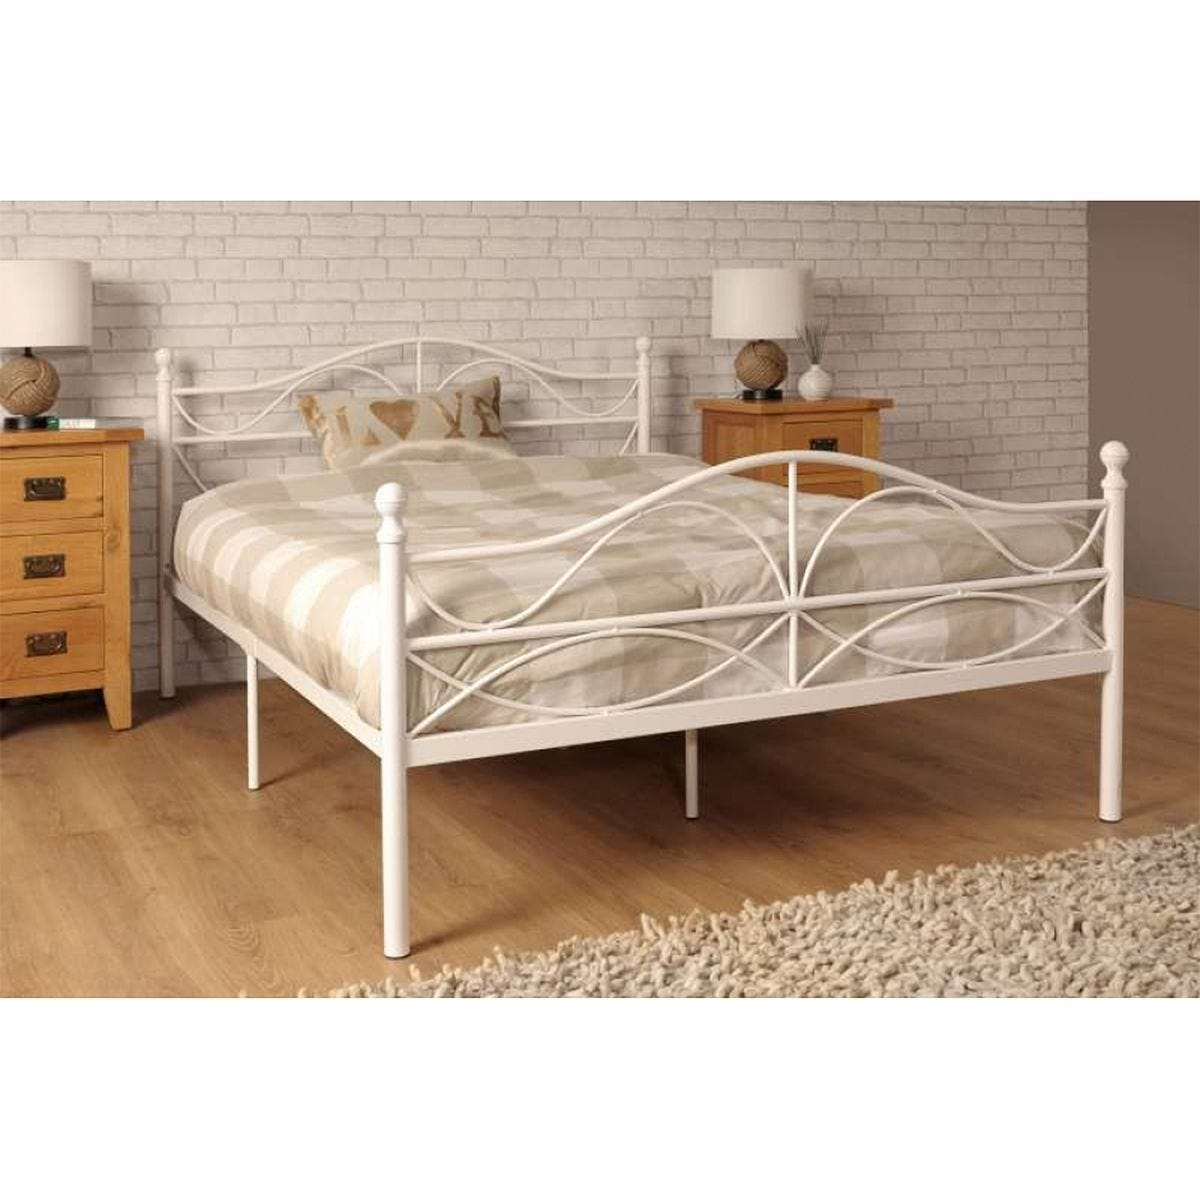 Willow Double Bed Frame - White